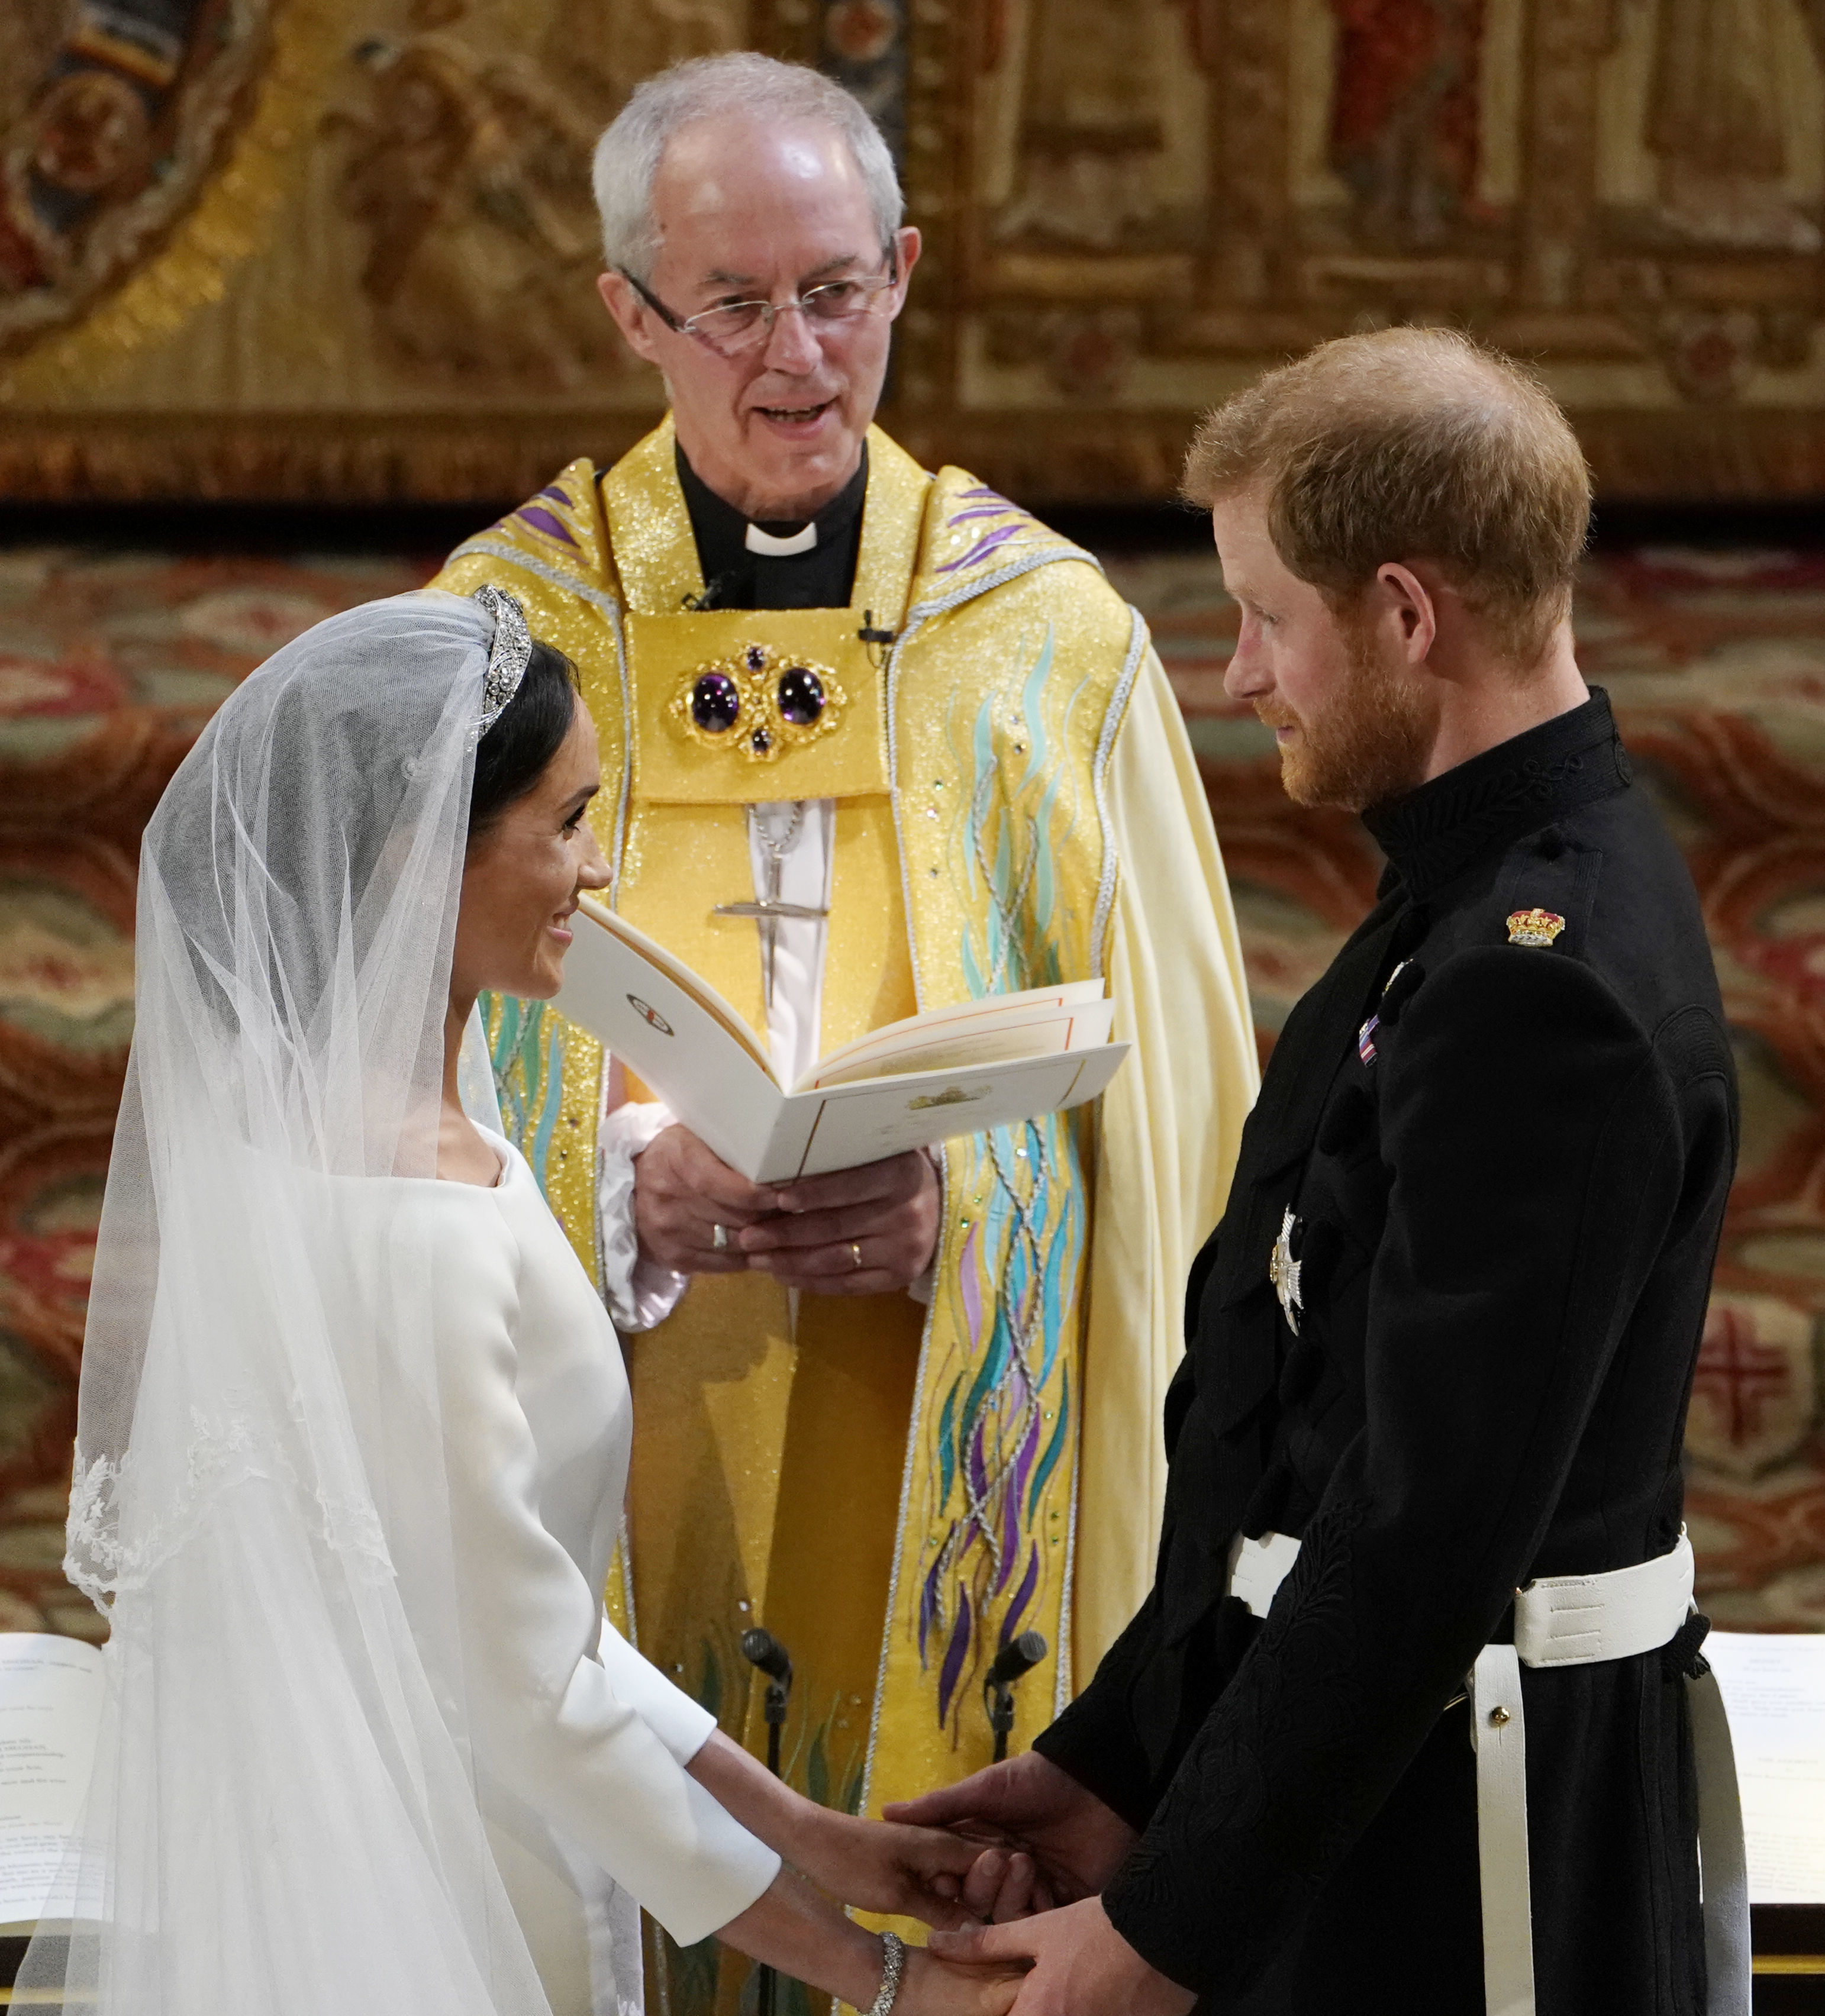 Prince Harry and Meghan Markle exchange vows